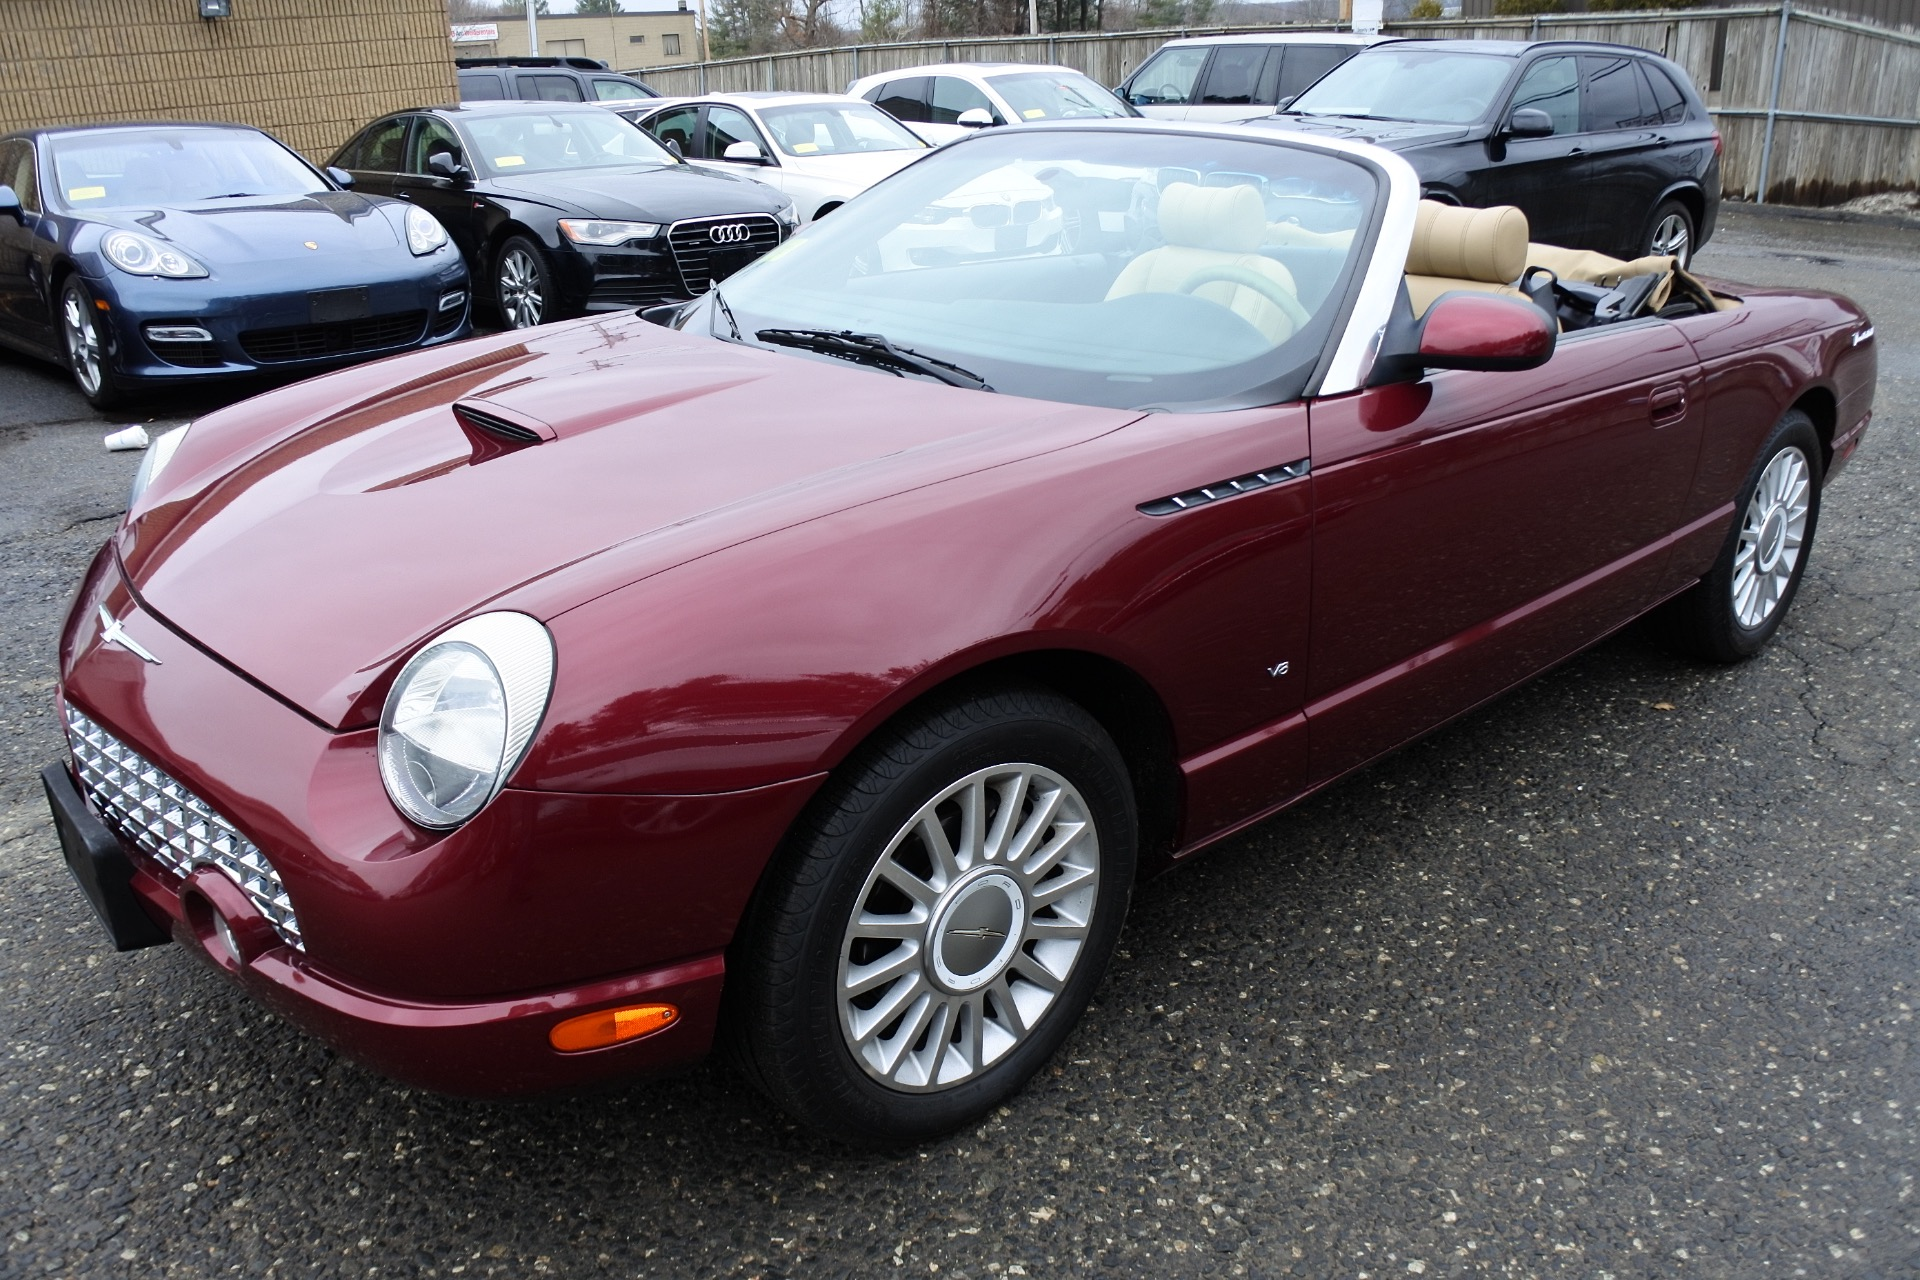 Used 2004 Ford Thunderbird 2dr Convertible Premium Used 2004 Ford Thunderbird 2dr Convertible Premium for sale  at Metro West Motorcars LLC in Shrewsbury MA 17